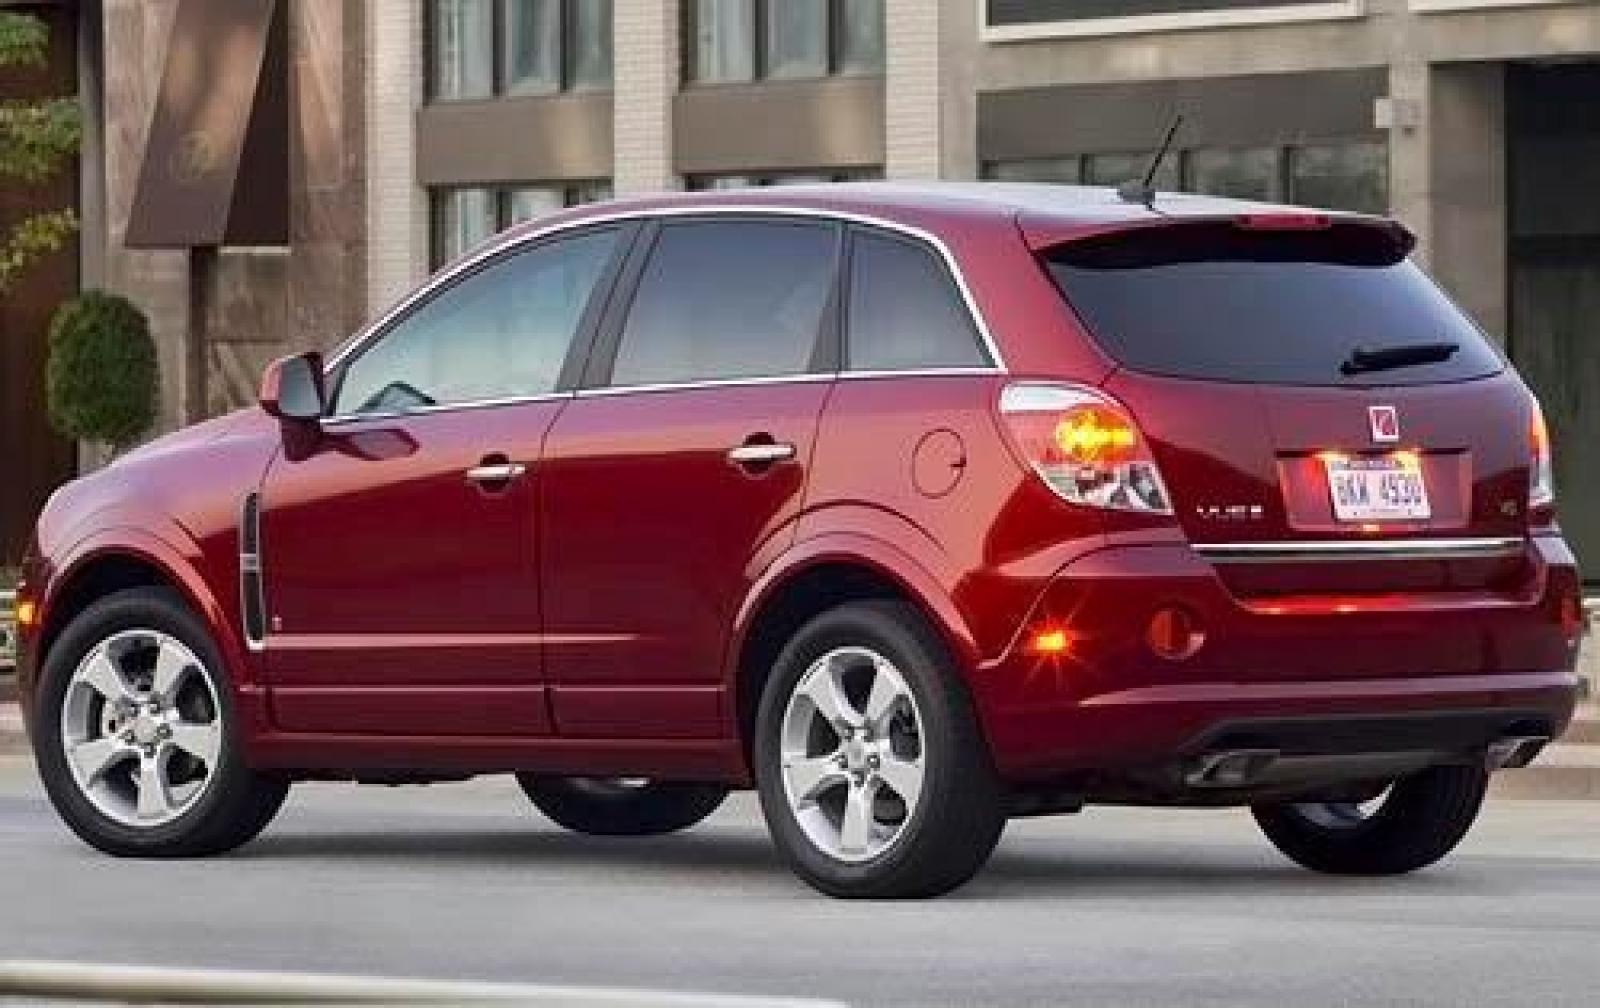 2009 saturn vue information and photos zombiedrive. Black Bedroom Furniture Sets. Home Design Ideas